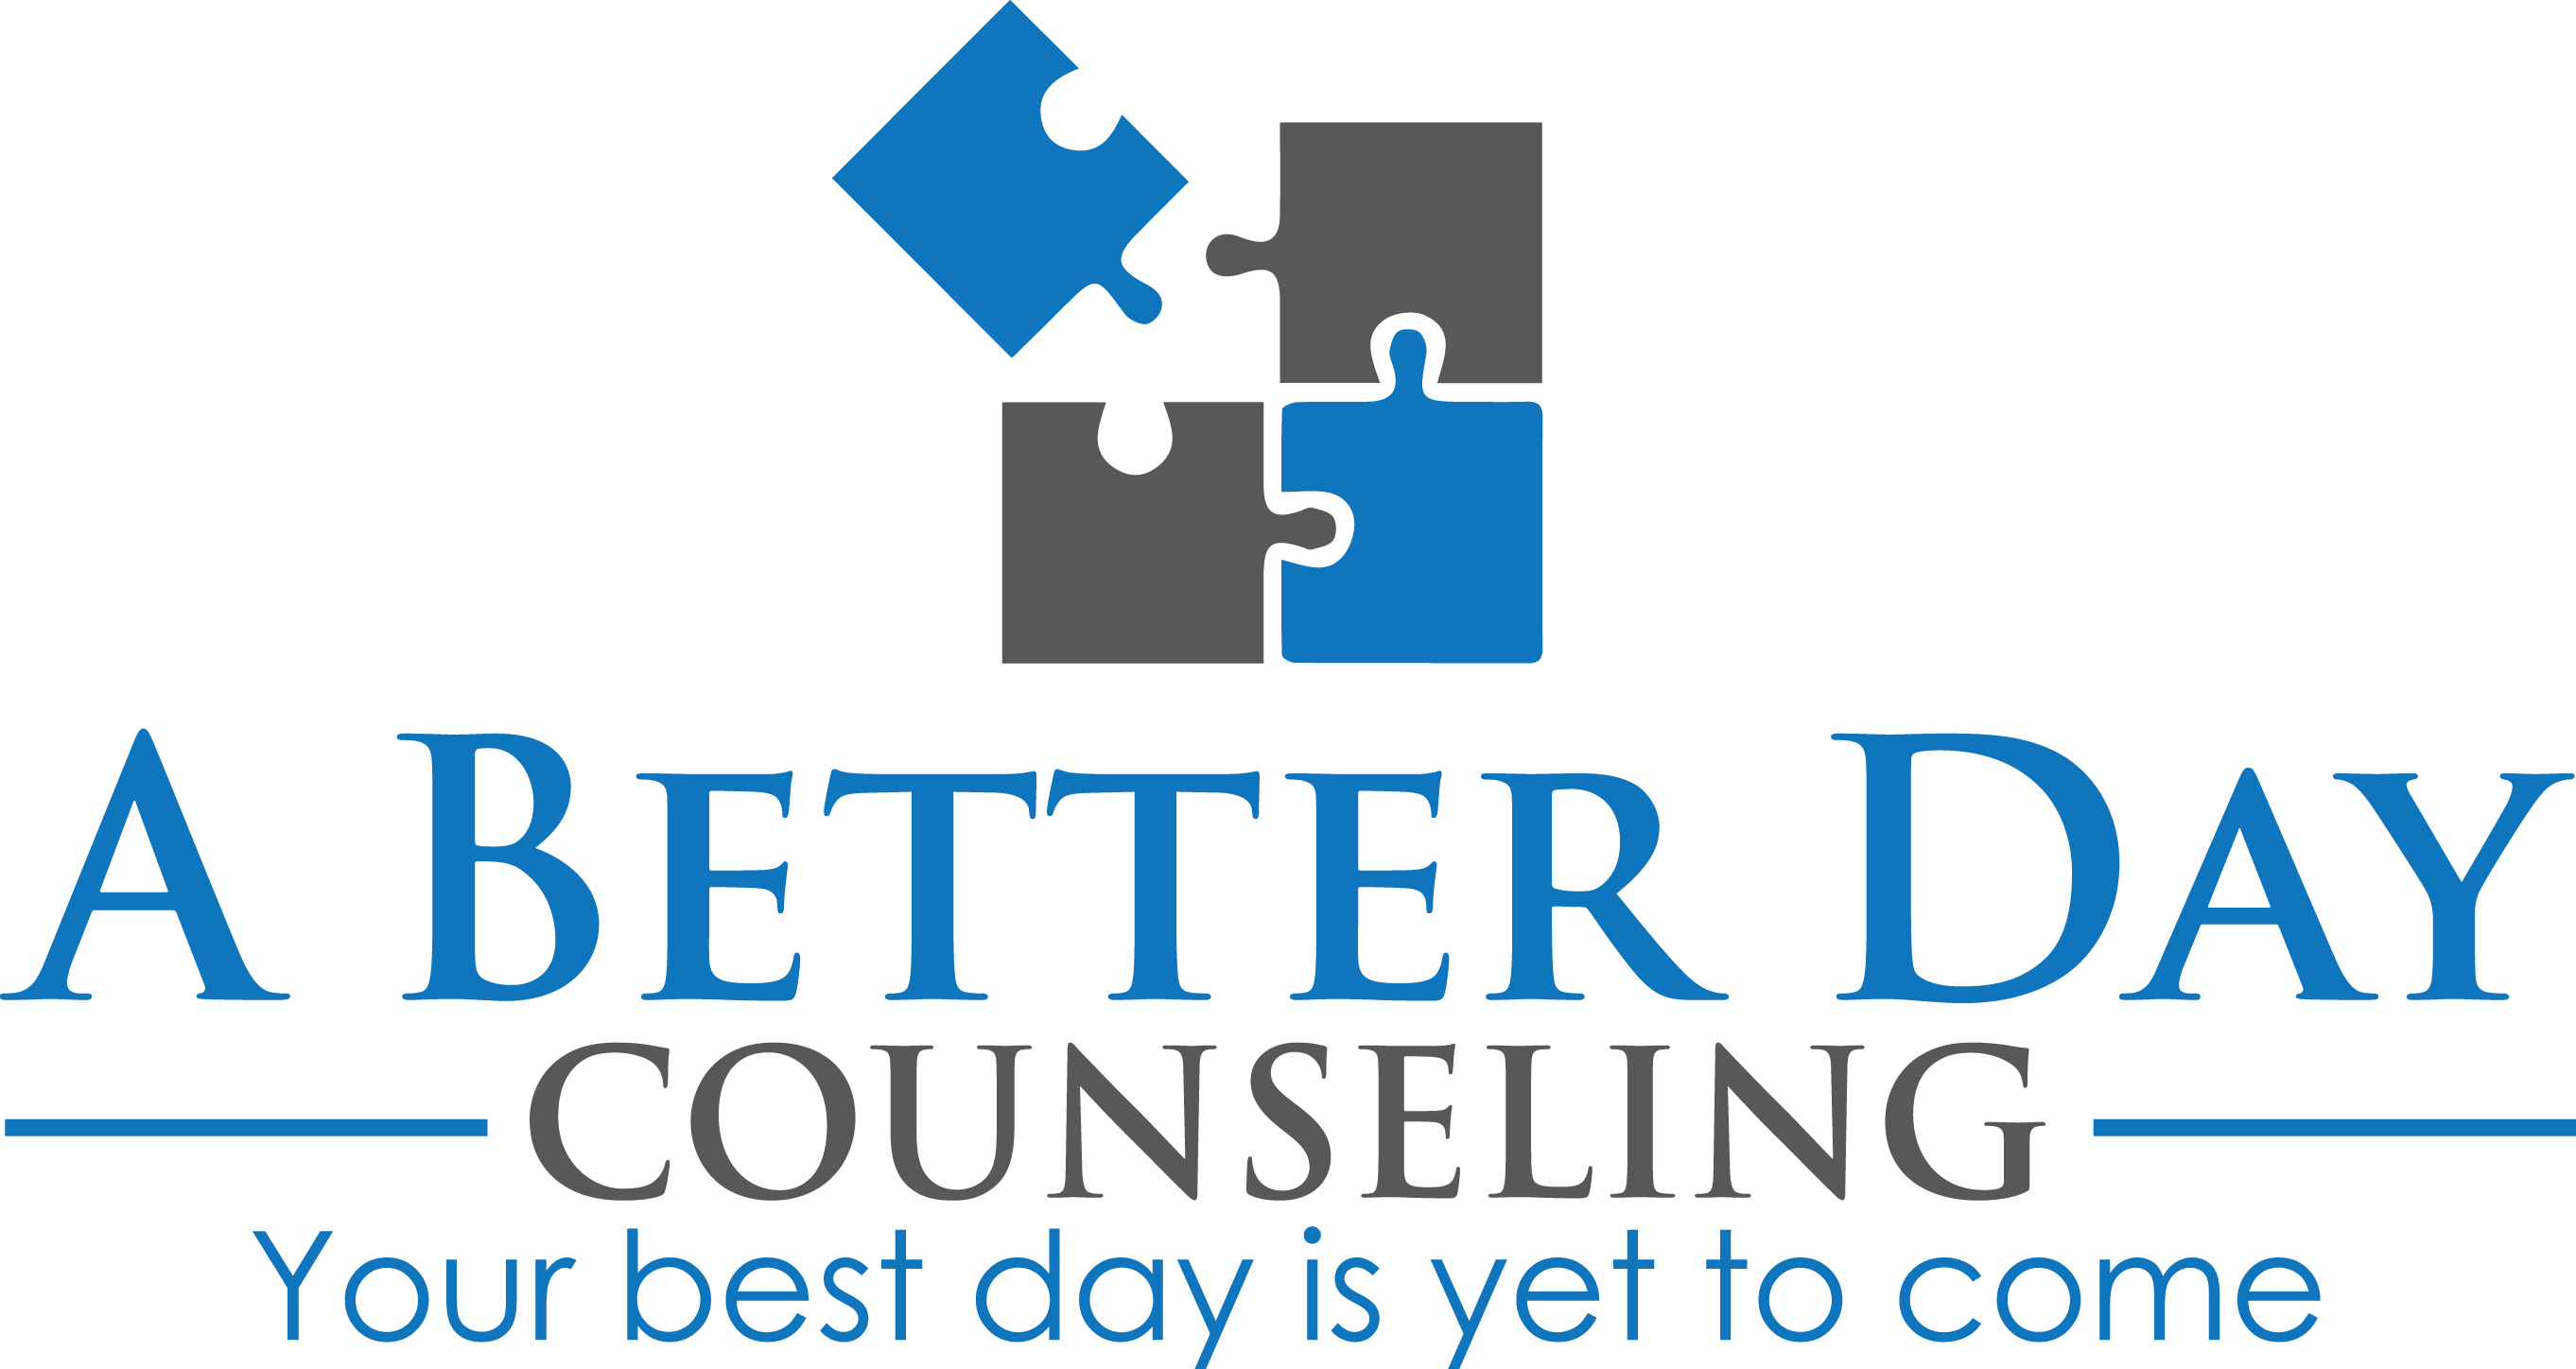 A Better Day Counseling | Counseling Children, Teens, Adults, Couples, and Families | Georgia 30096